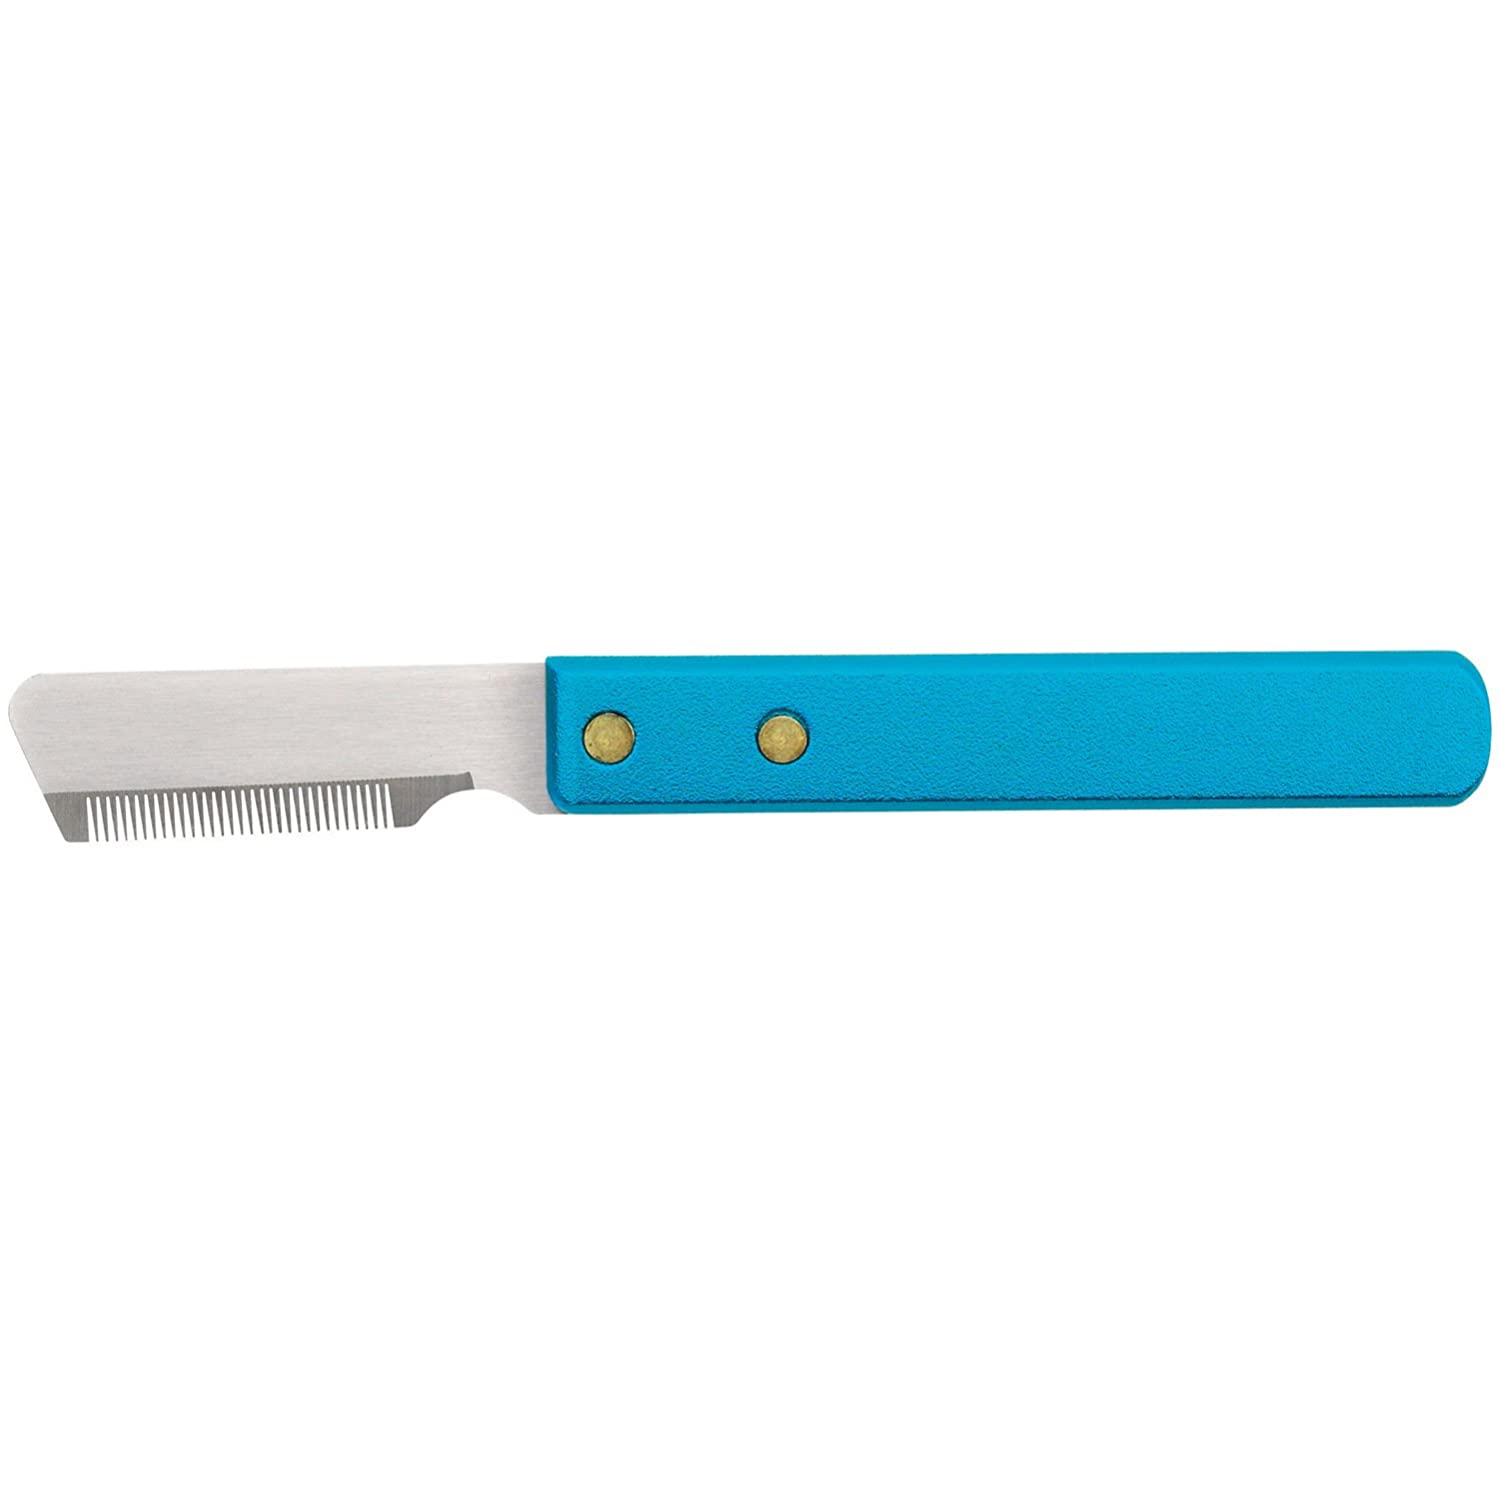 Fine Master Grooming Tools 6-3//4-Inch Stainless Steel Pet Stripper Knive